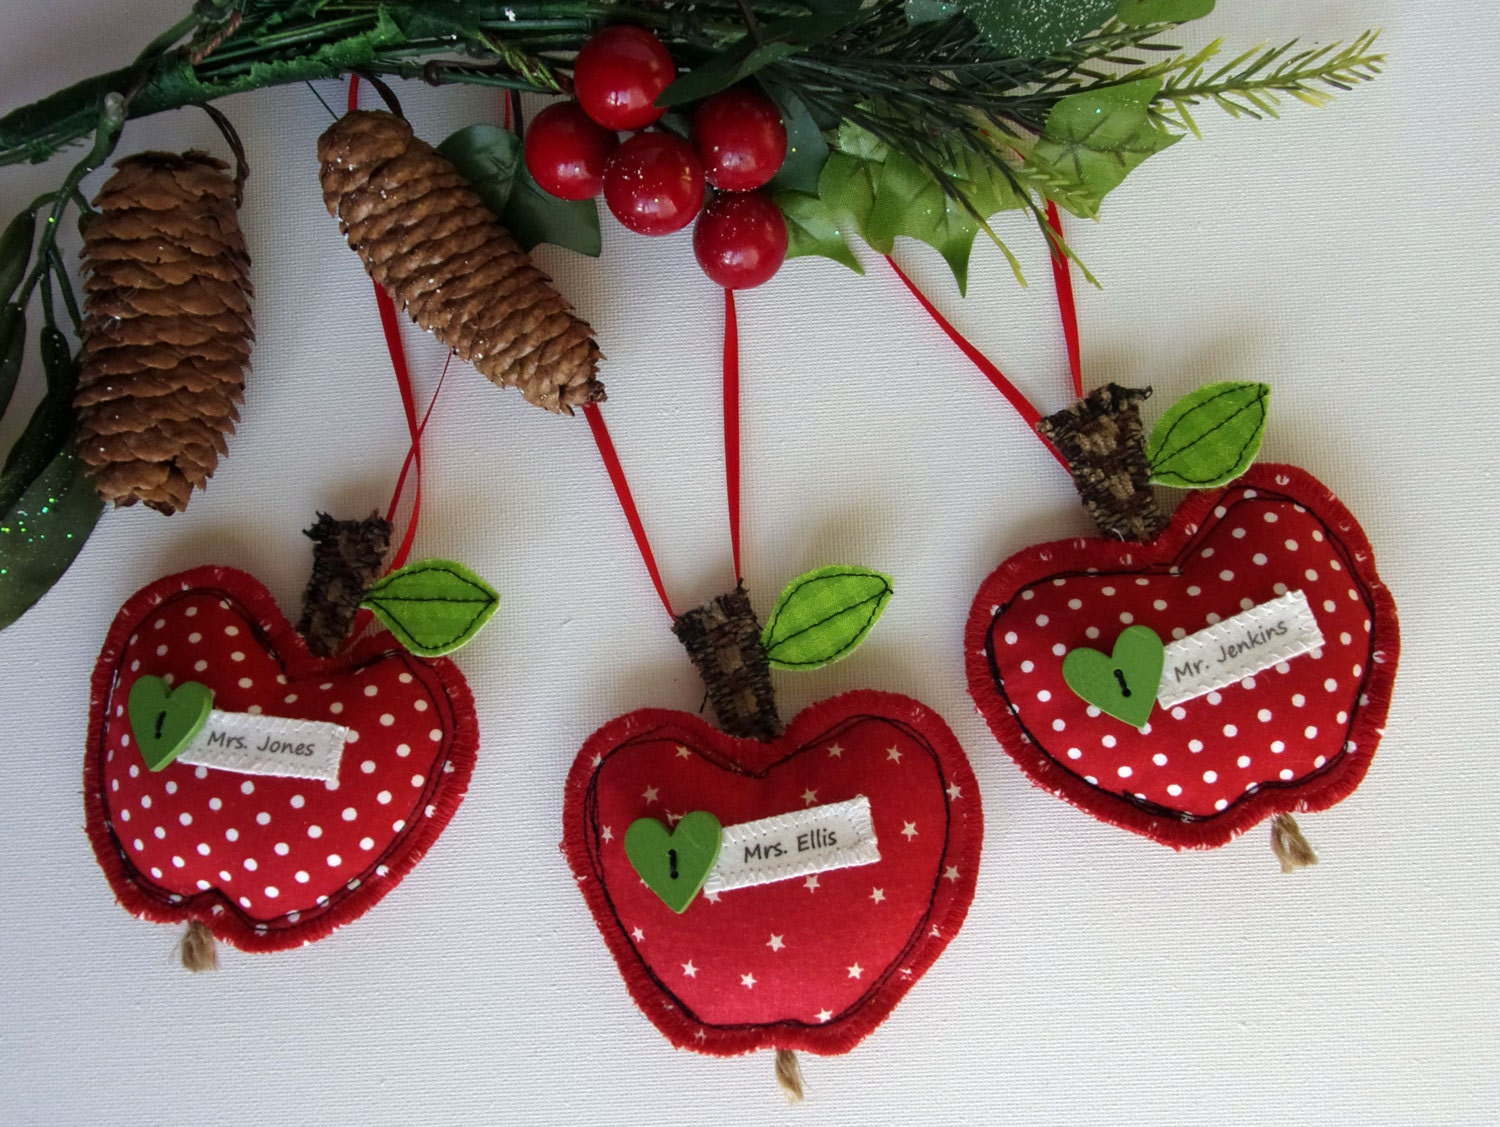 Custom christmas ball ornaments - Gift For Teacher Thank You Gifts Teachers End Of Year Teacher Gifts Personalized Teacher Unique Gift